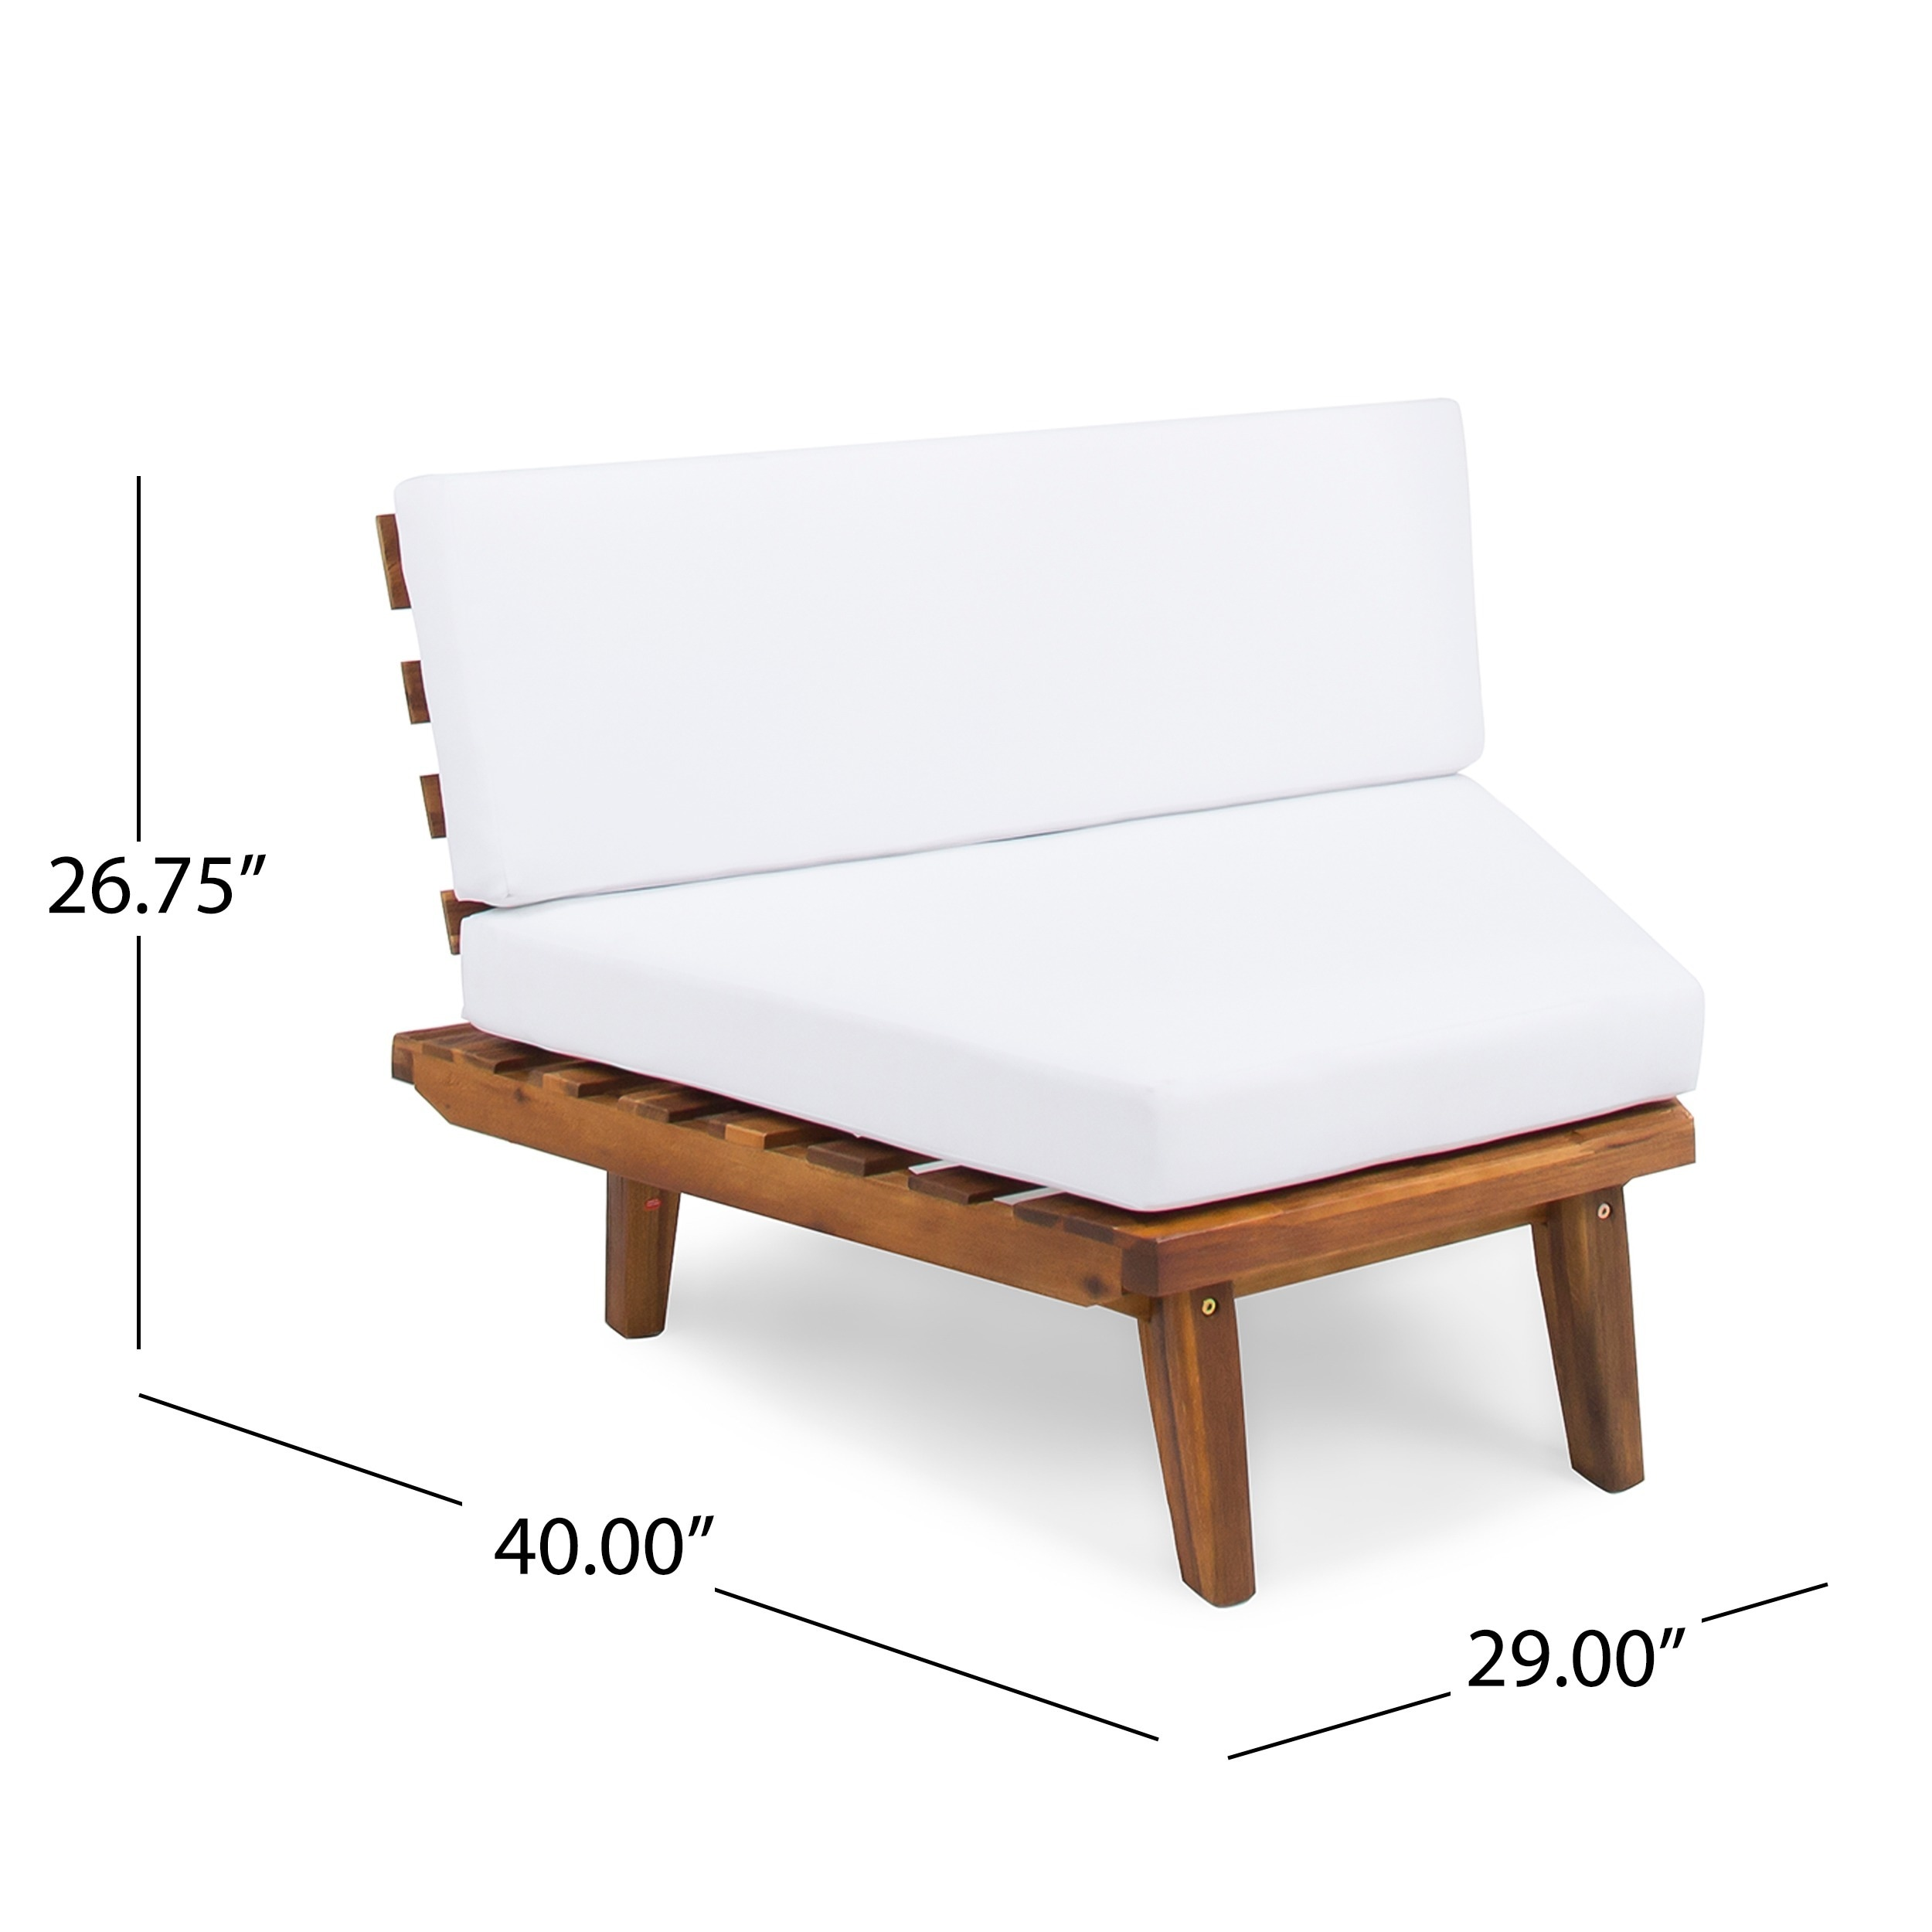 Shop Hillcrest Outdoor 4-piece V-Shaped Wood Sectional Sofa Set with ...